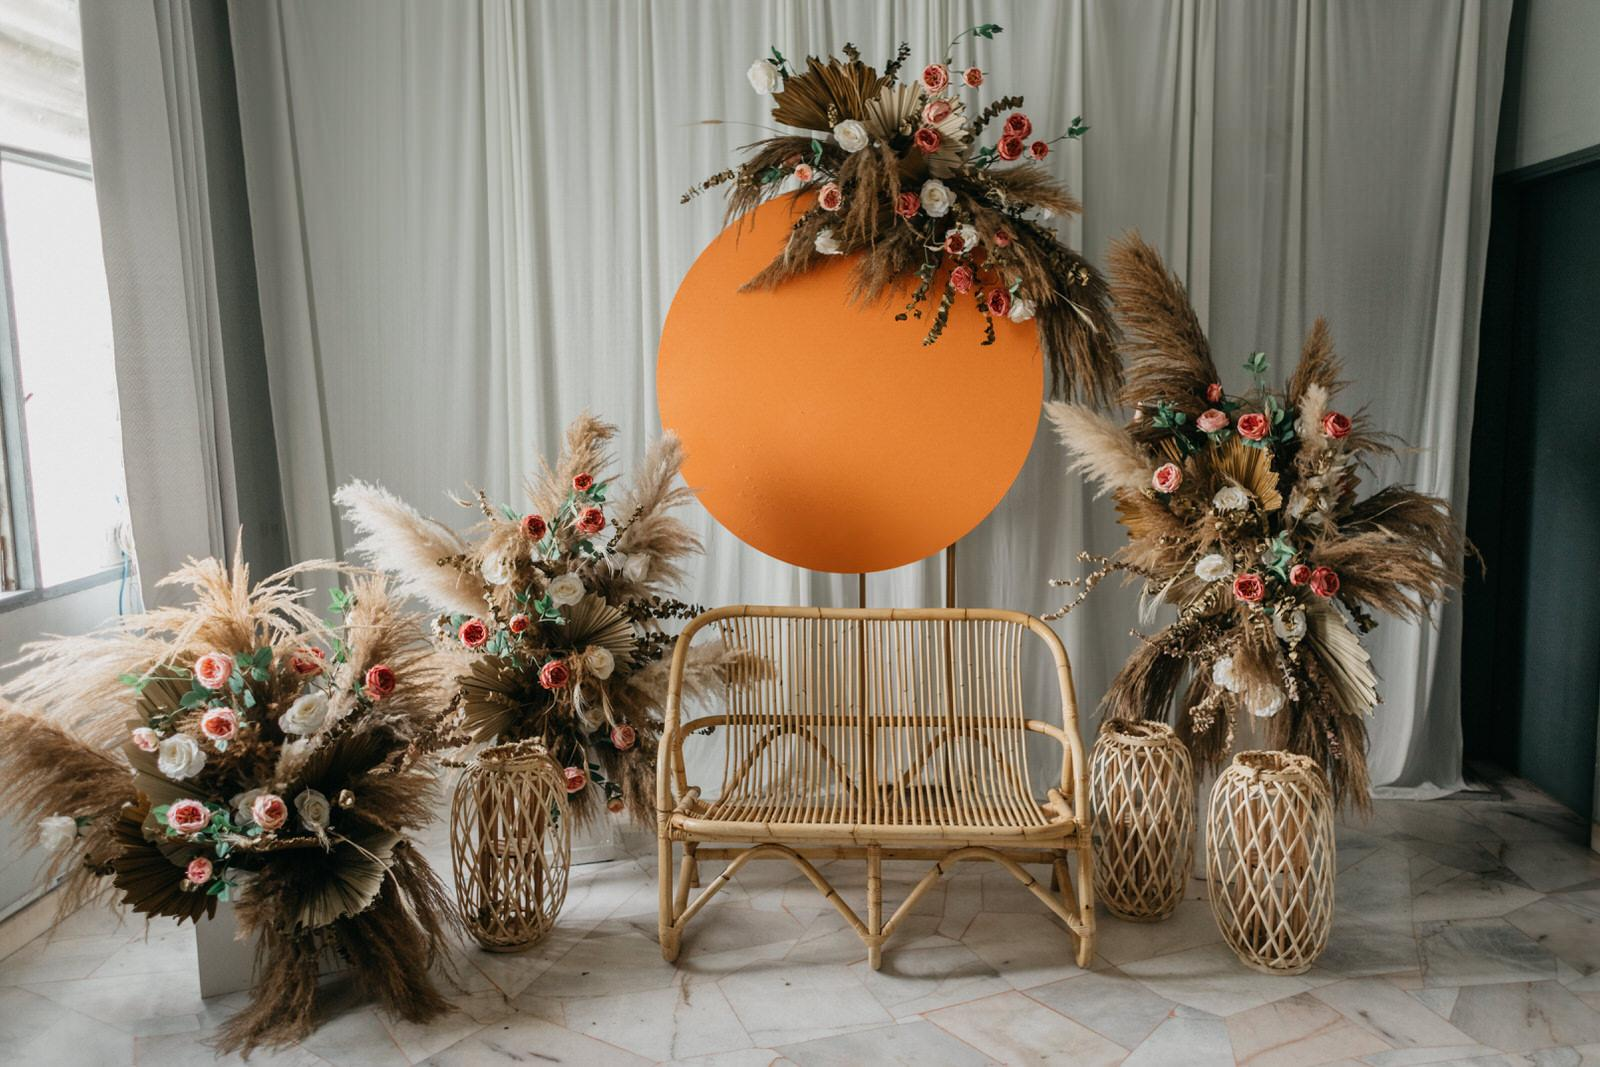 Decoration for Season Indoor Family Portrait Cliff Choong Photography with Art Of Love Decorator & Wedding Planner